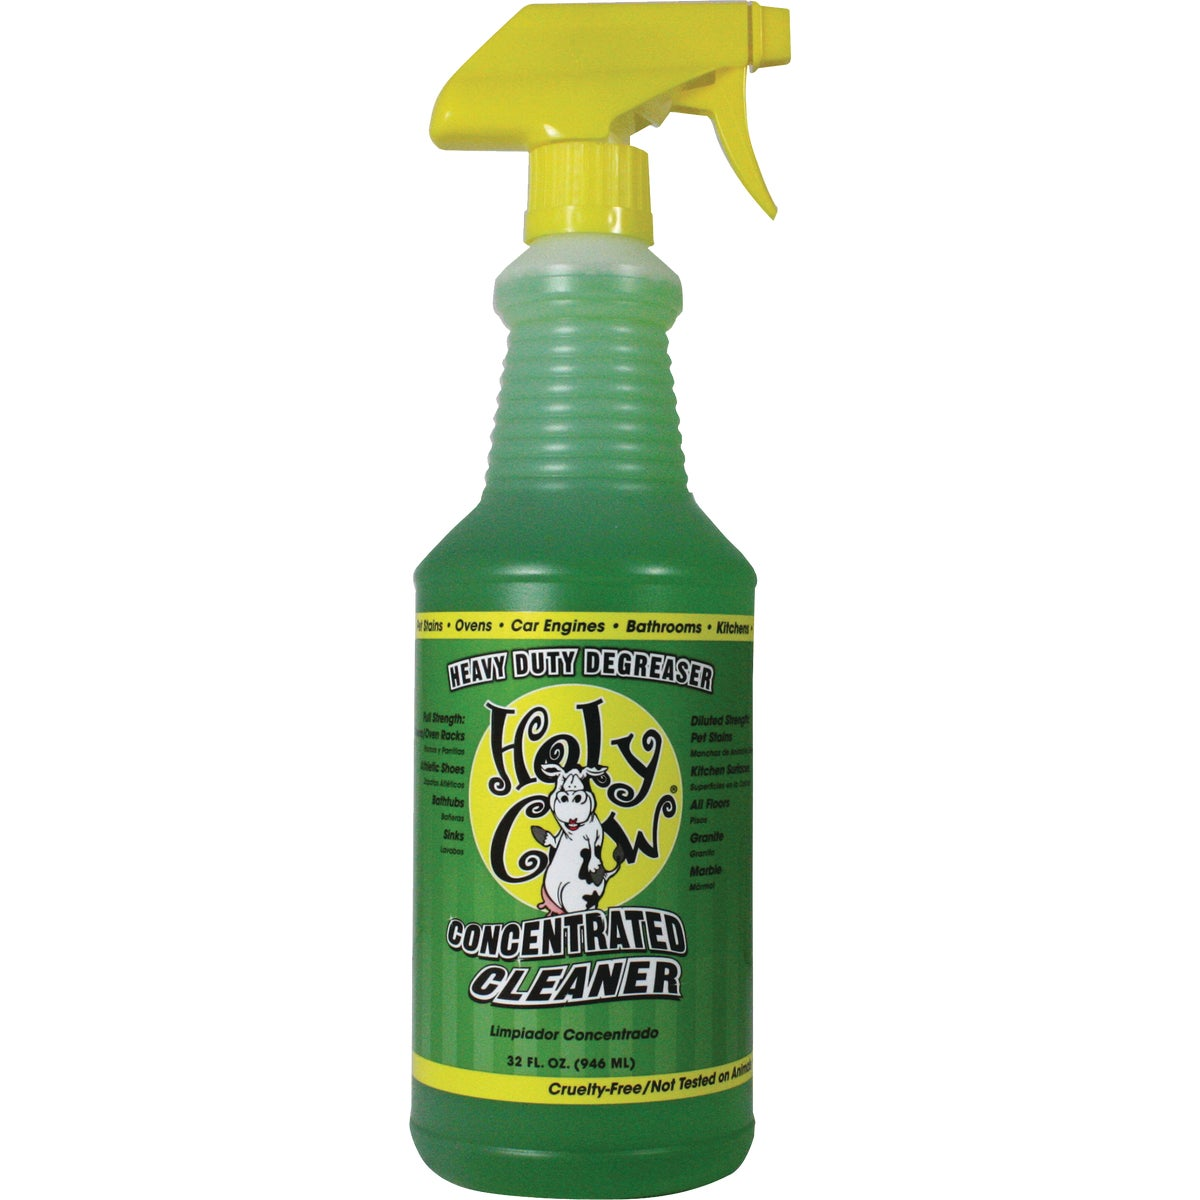 32OZ CONCENTRATE CLEANER - HC 1246R by Sprayway Inc